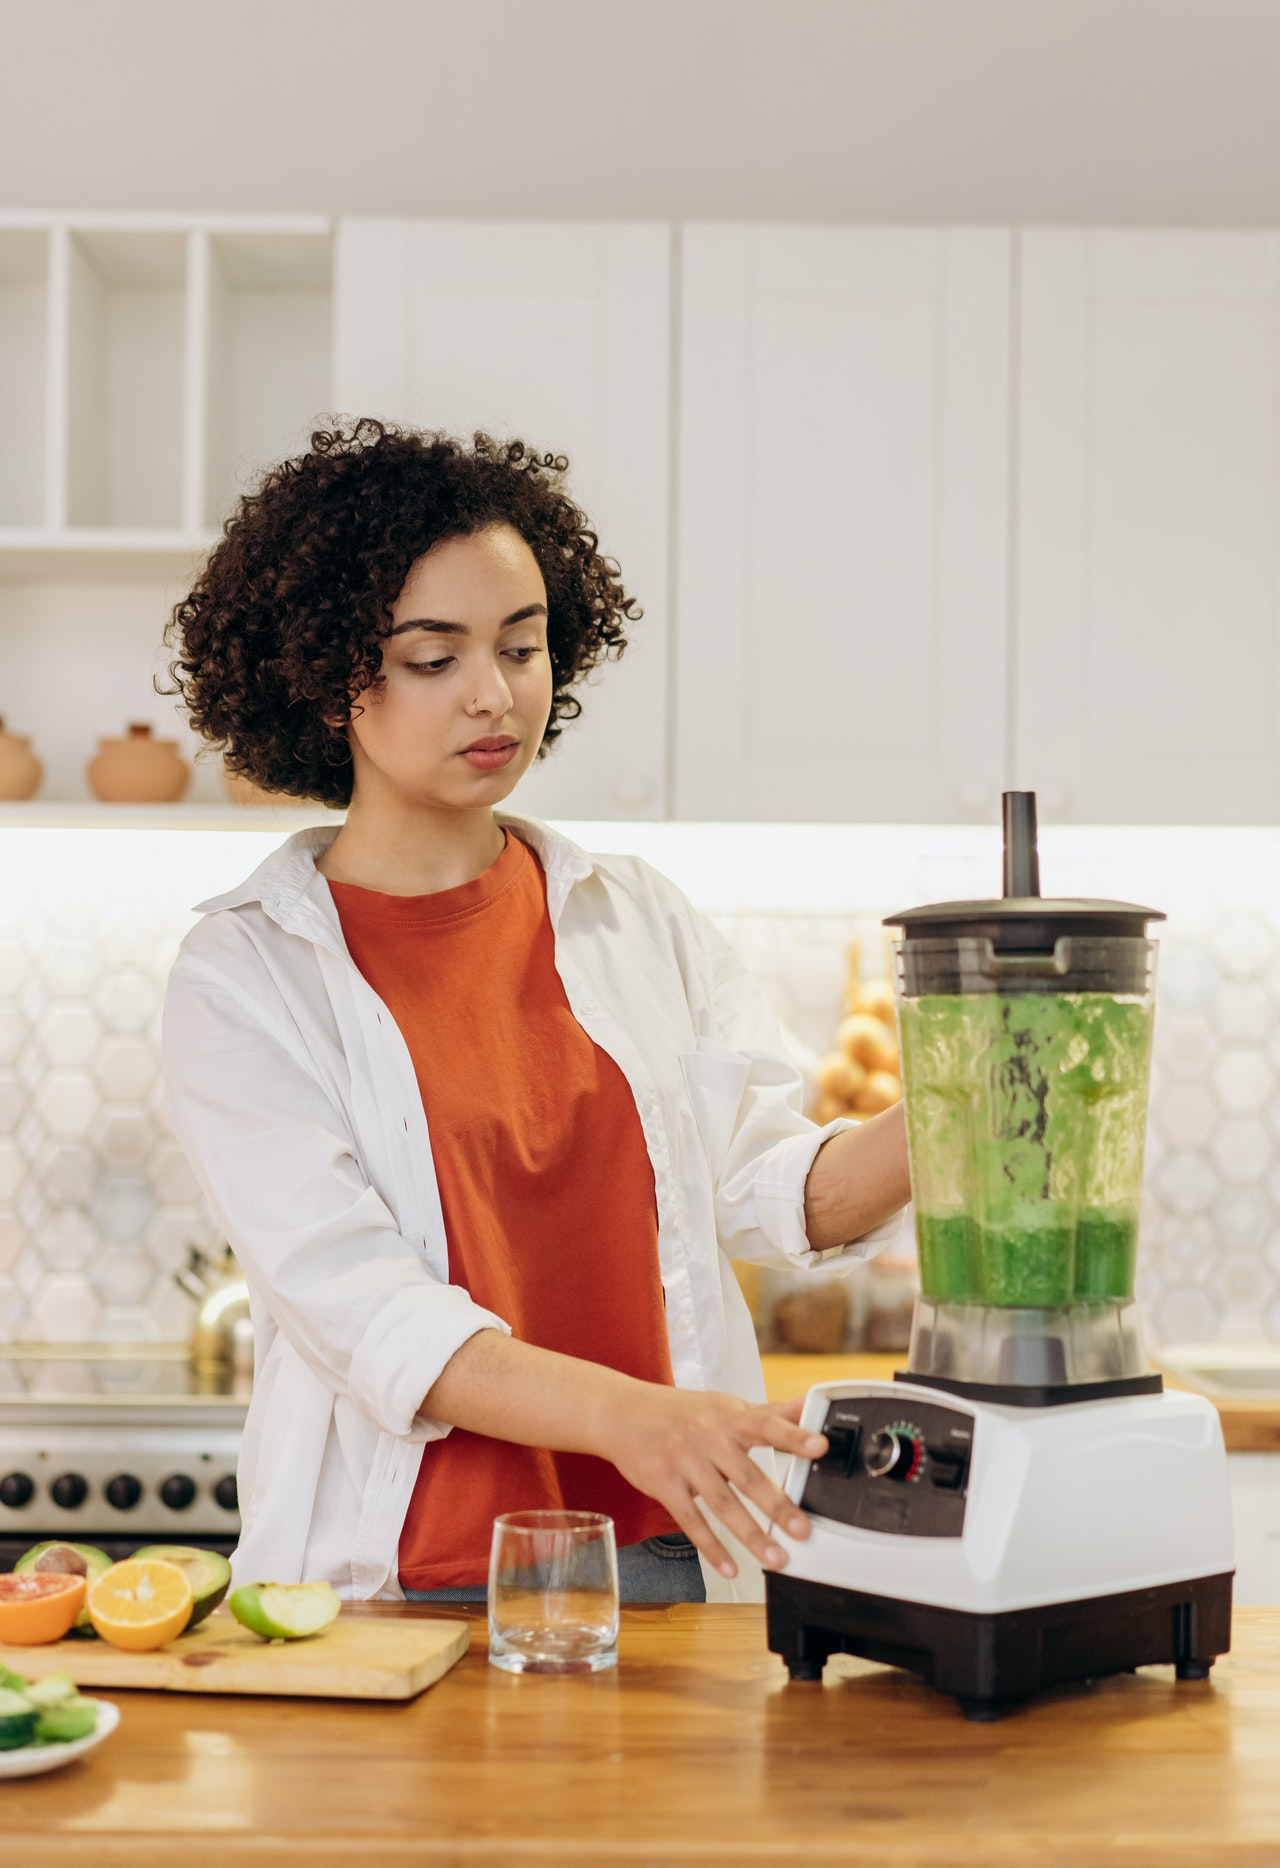 Lot of Tips for buying and maintaining the juice blender